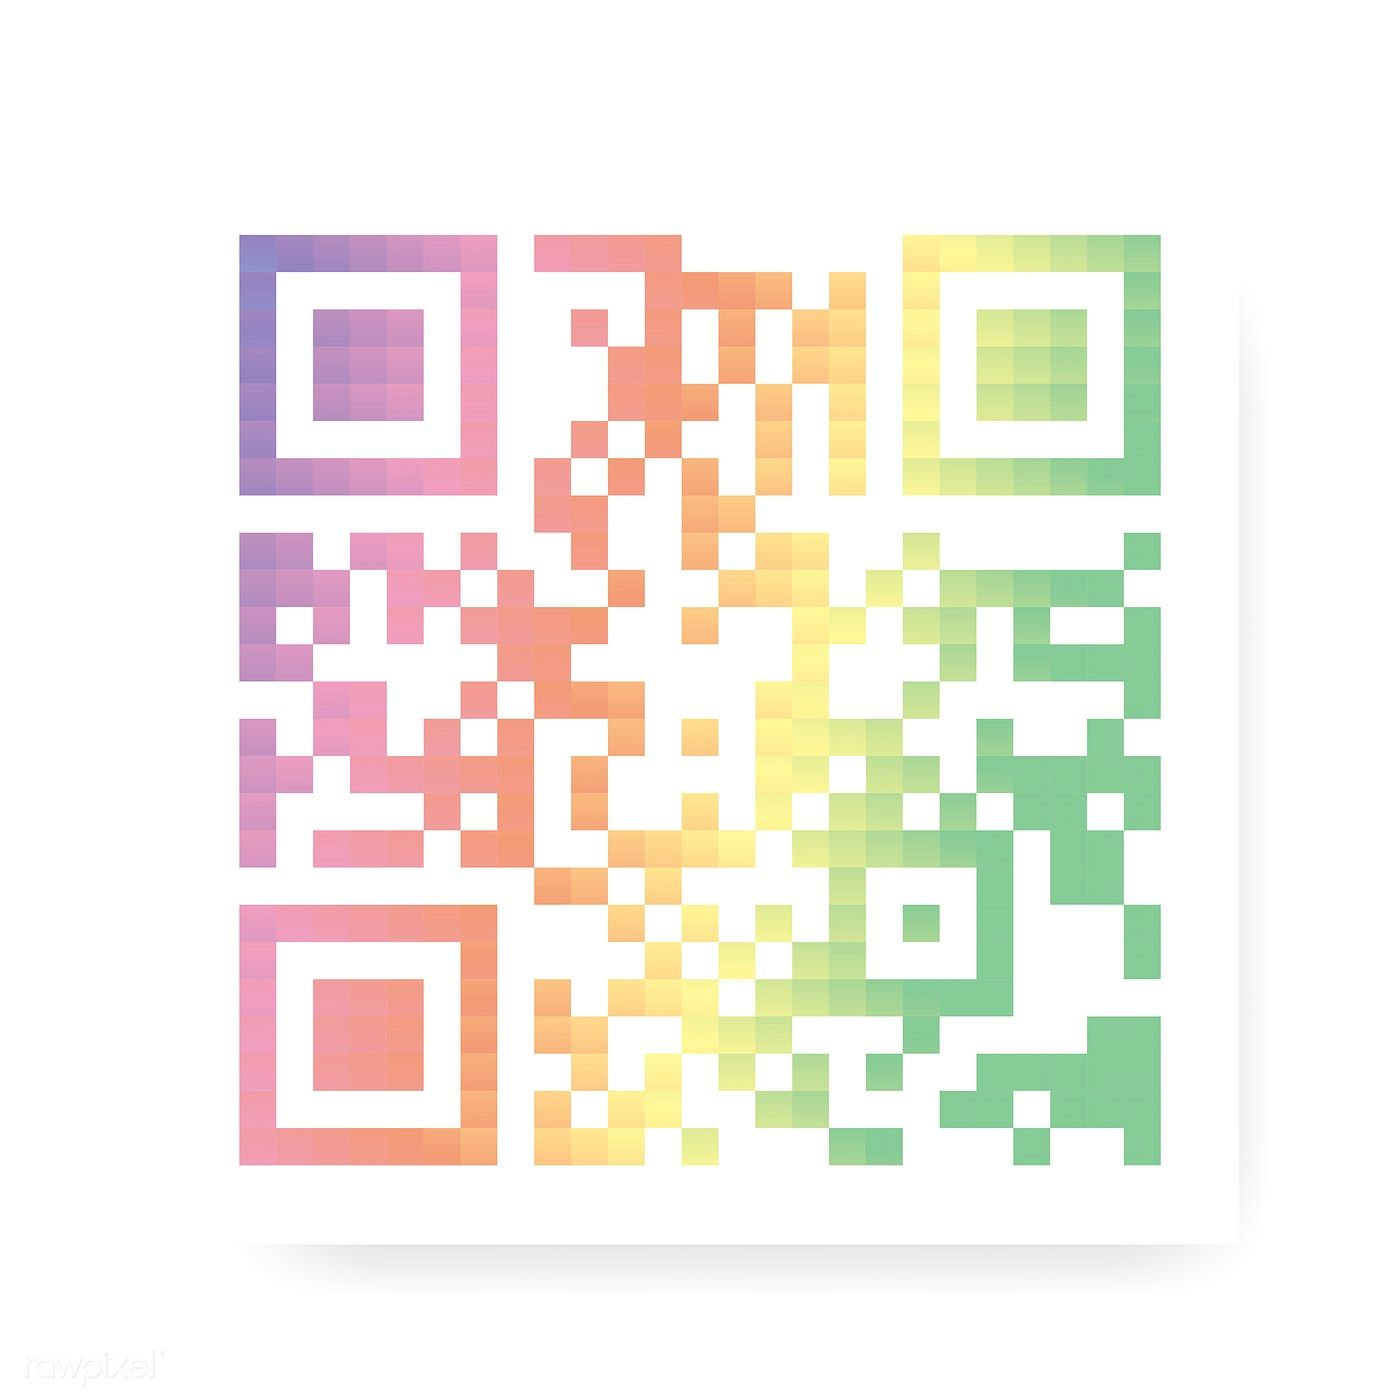 Flat colorful QR code vector | free image by rawpixel com